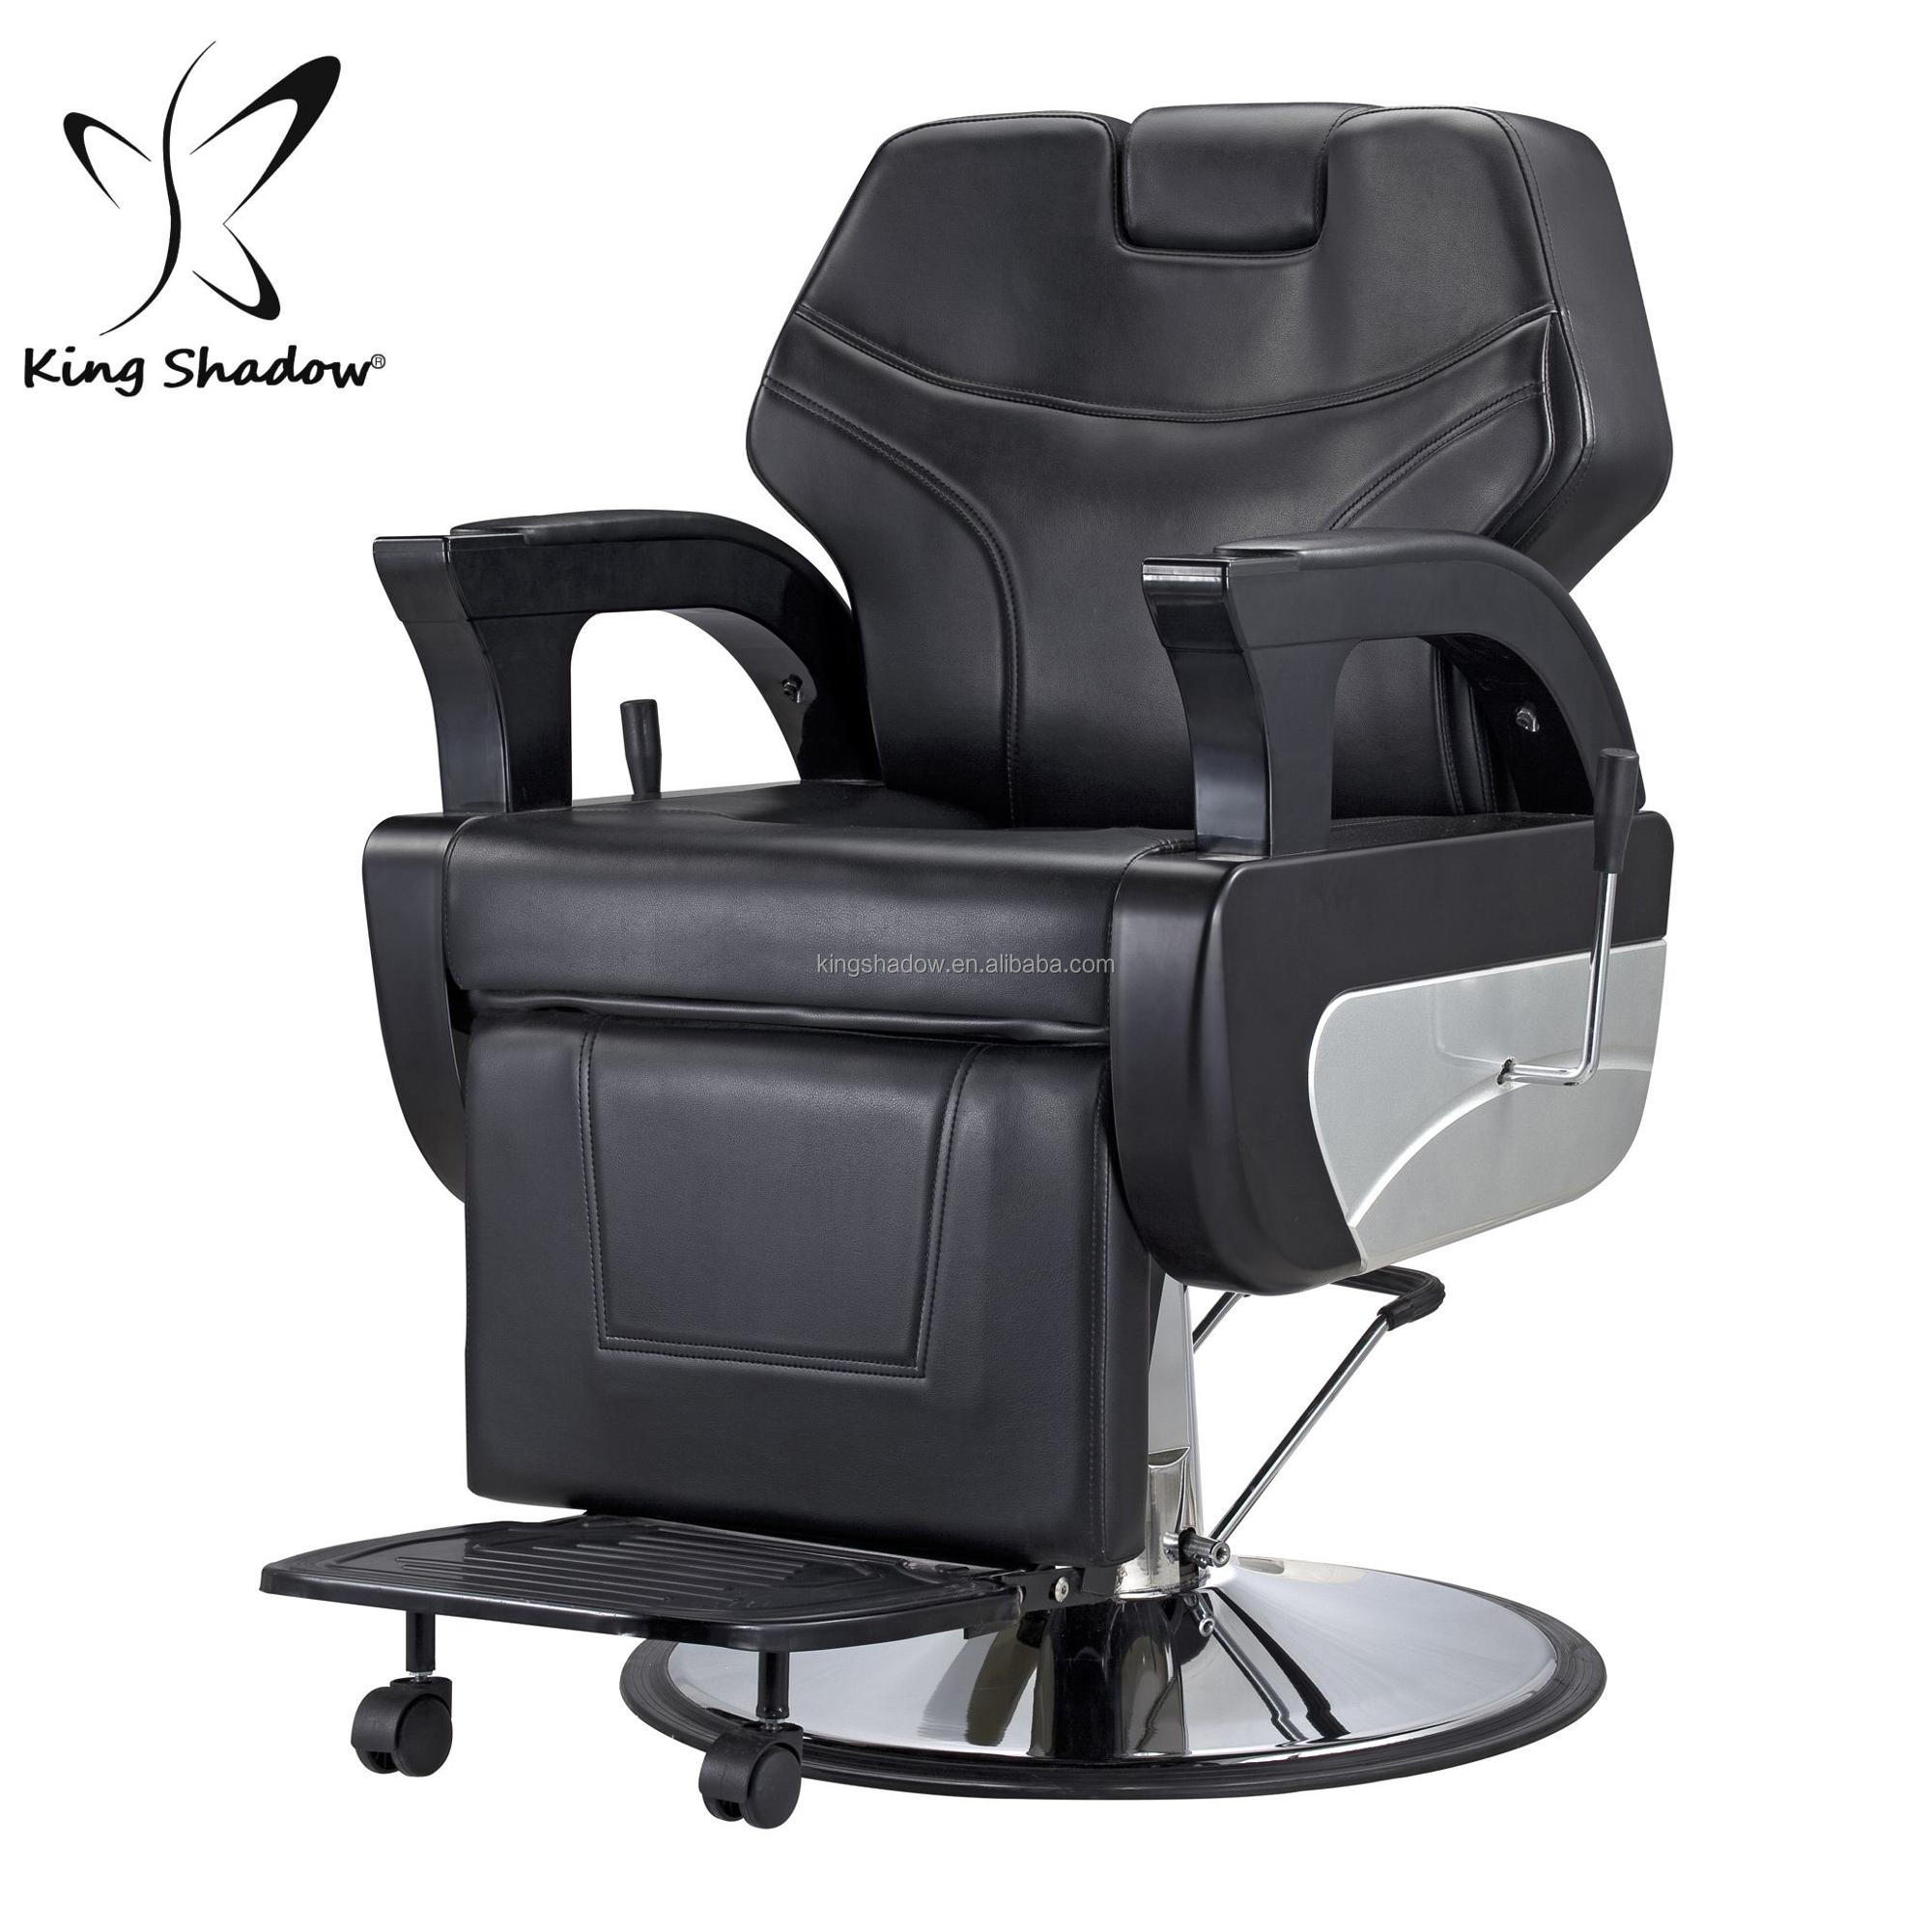 Chair Price New Fashion Man Styling Barber Chair Price Second Hand Vintage Barber Chairs For Hot Sale Buy Man Styling Barber Chairs Second Hand Barber Chairs